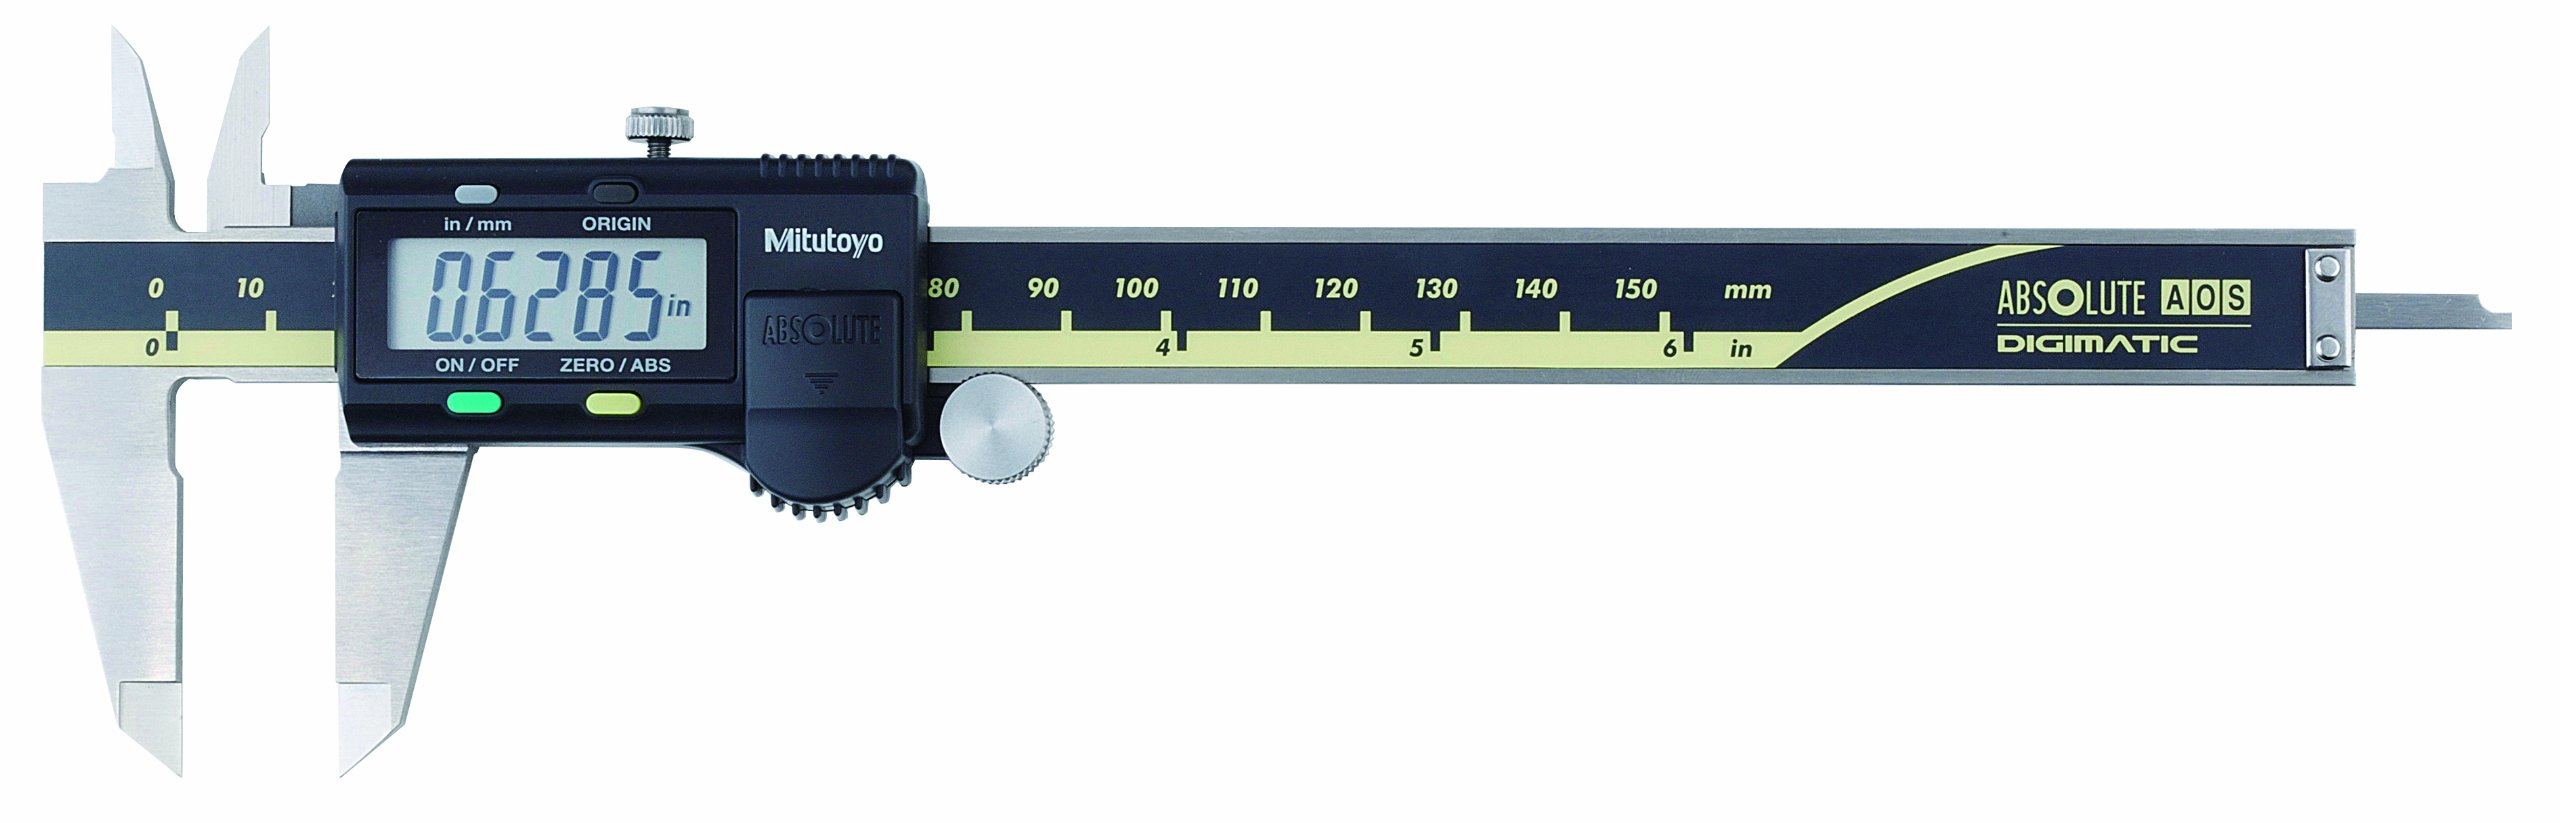 Mitutoyo 500-196-30CAL Absolute Advanced Onsite Sensor (AOS) Digital Caliper with Calibration, Inch/Metric, 0-6'' Range, 0.0005'' Resolution, +/-0.001'' Accuracy by Mitutoyo (Image #1)